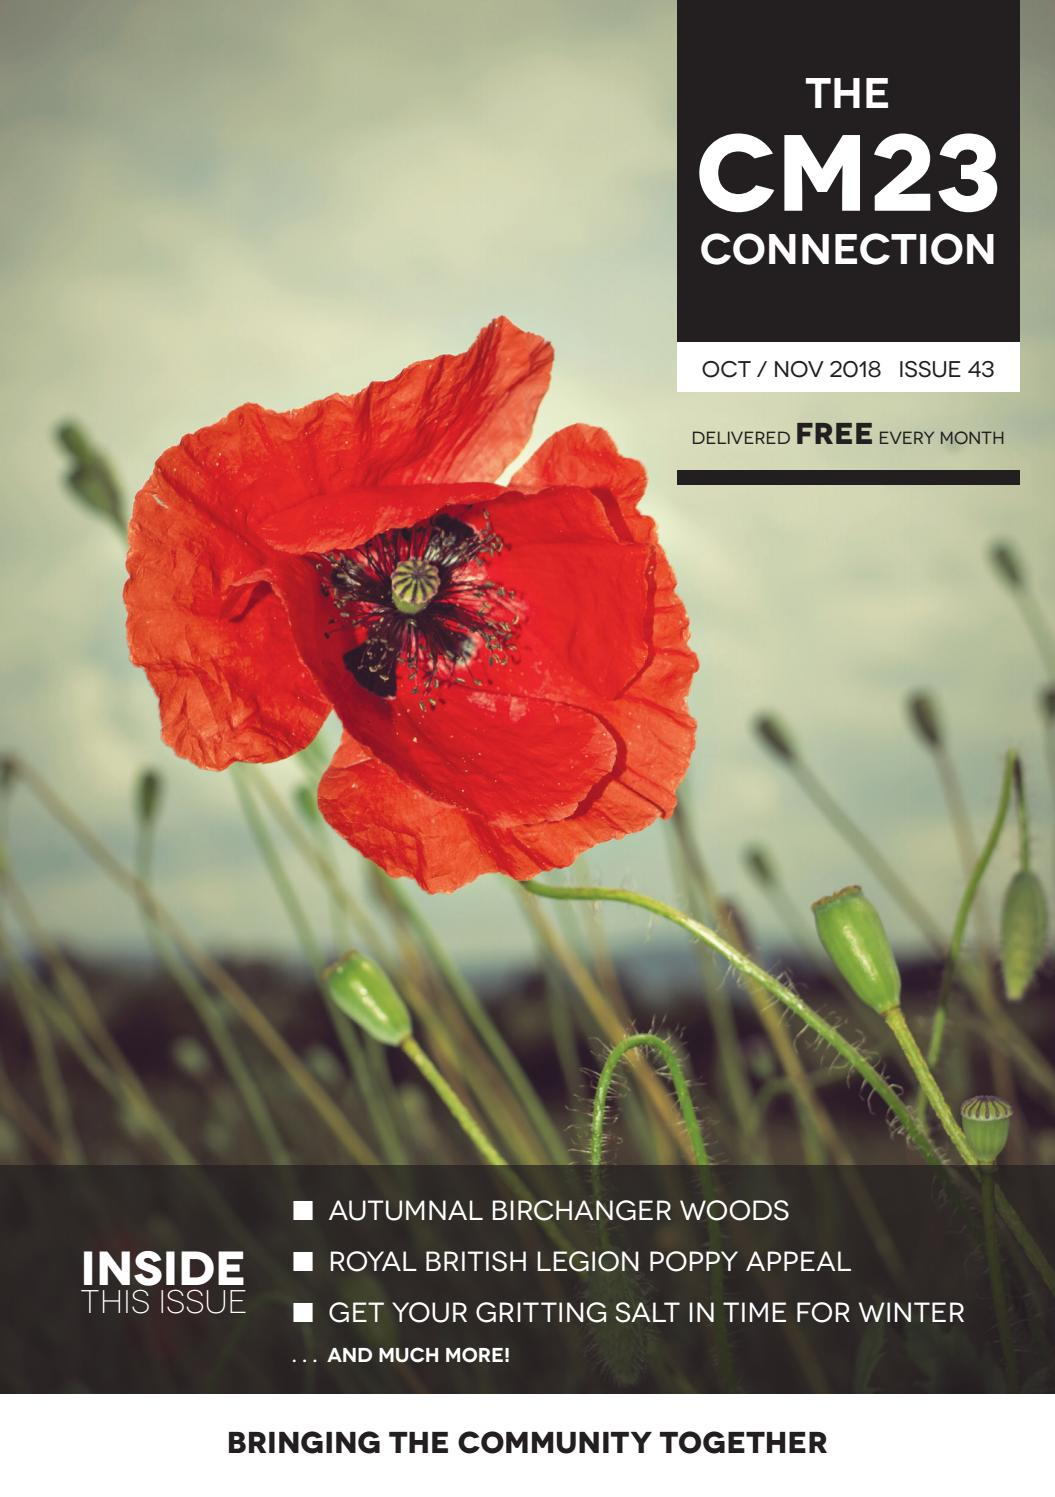 The CM23 Connection Oct/Nov Edition by Lorraine Perry - issuu